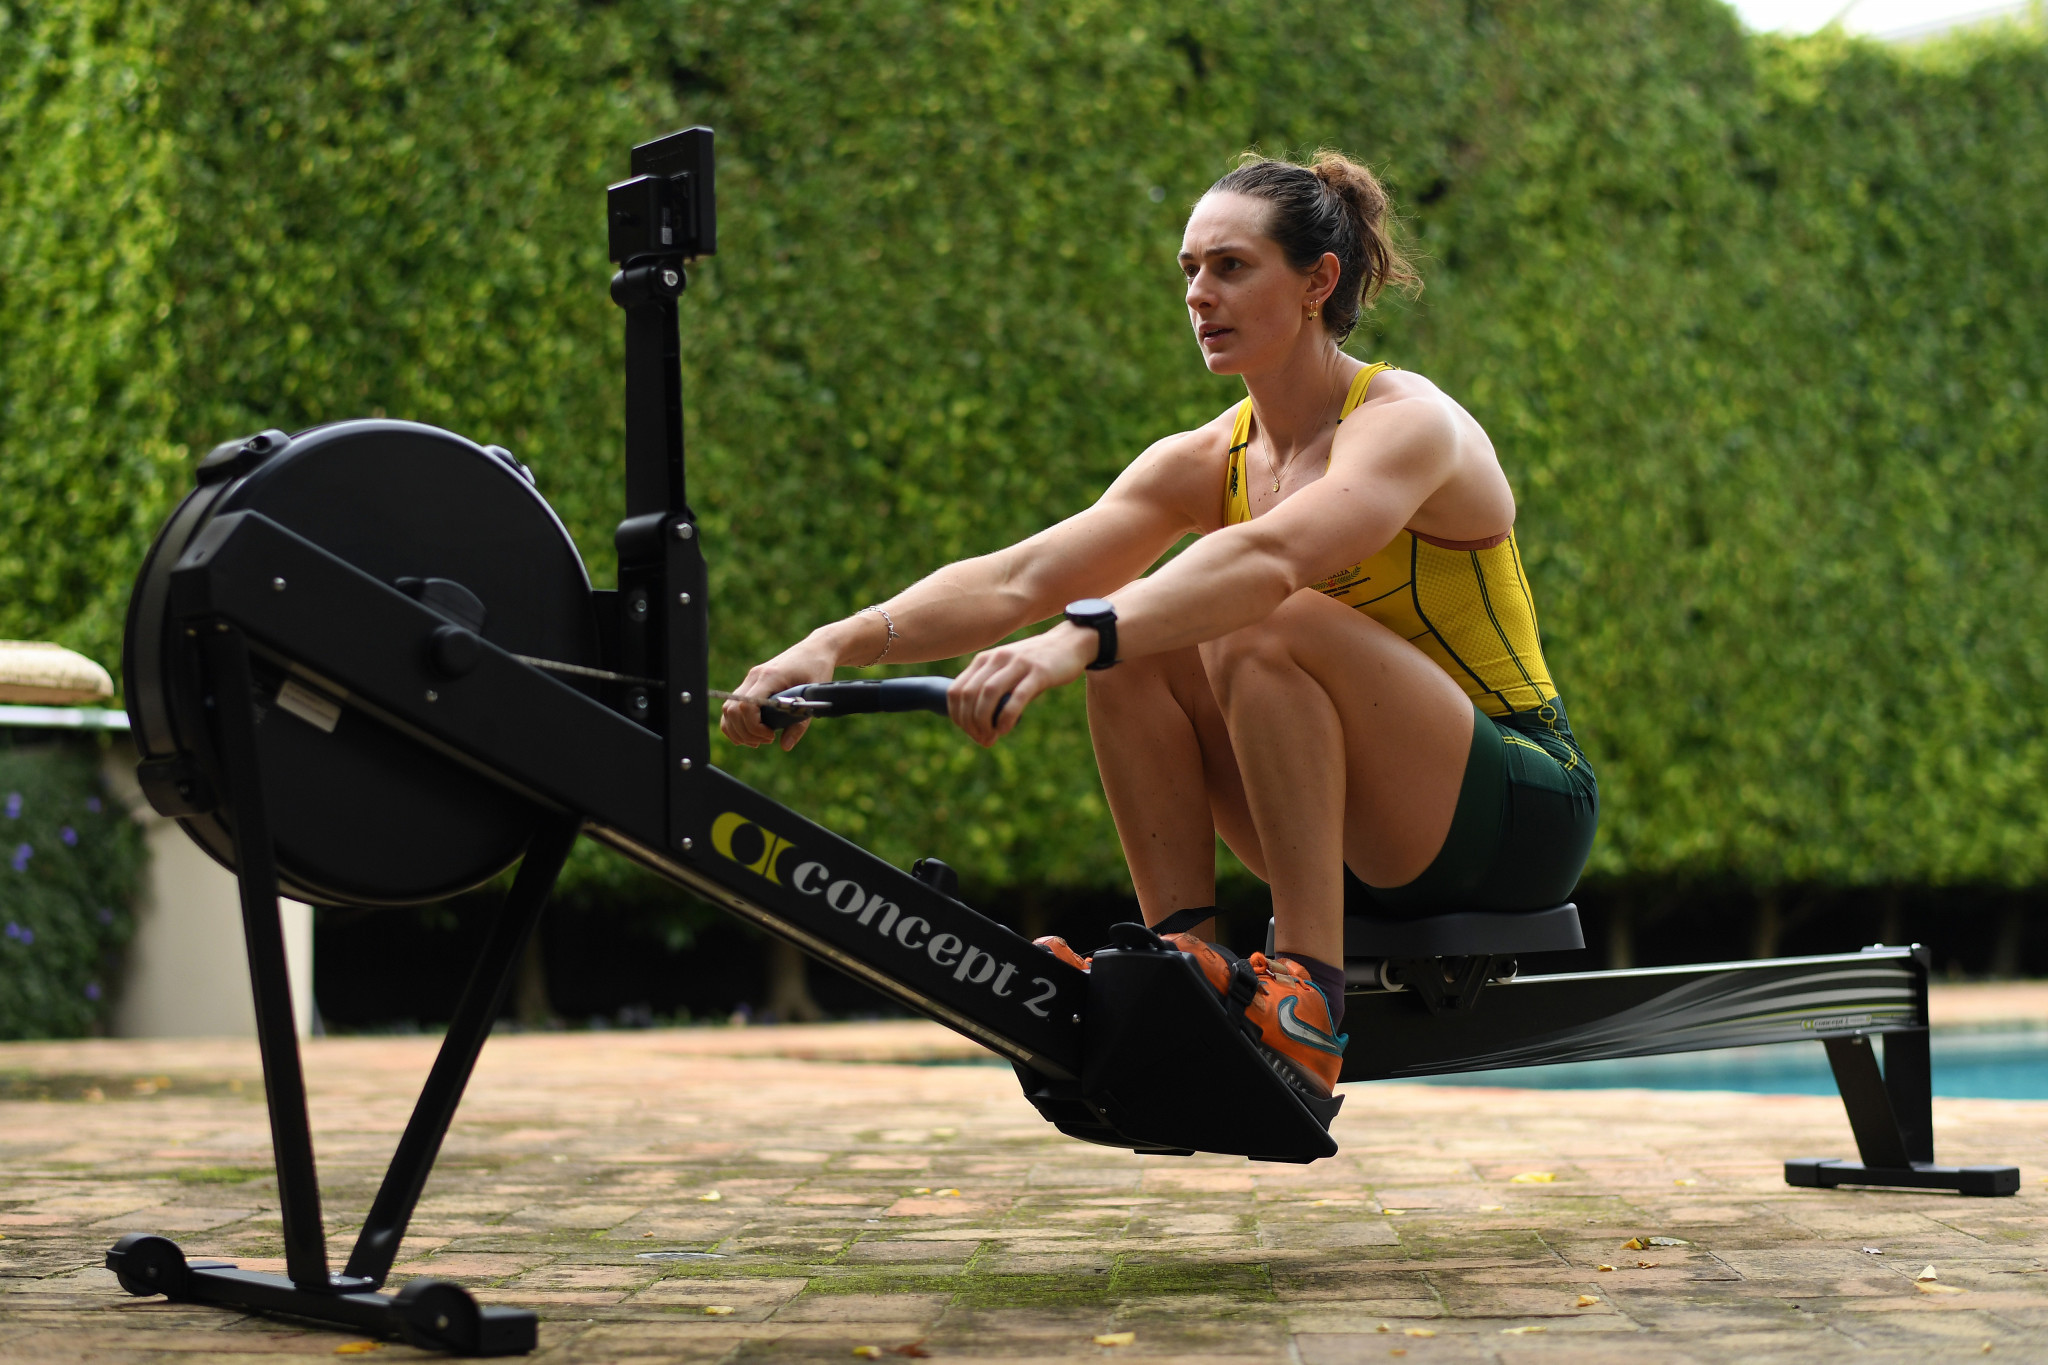 Qualifiers for the World Rowing Indoor Championships are being held in Europe and Oceania ©Getty Images